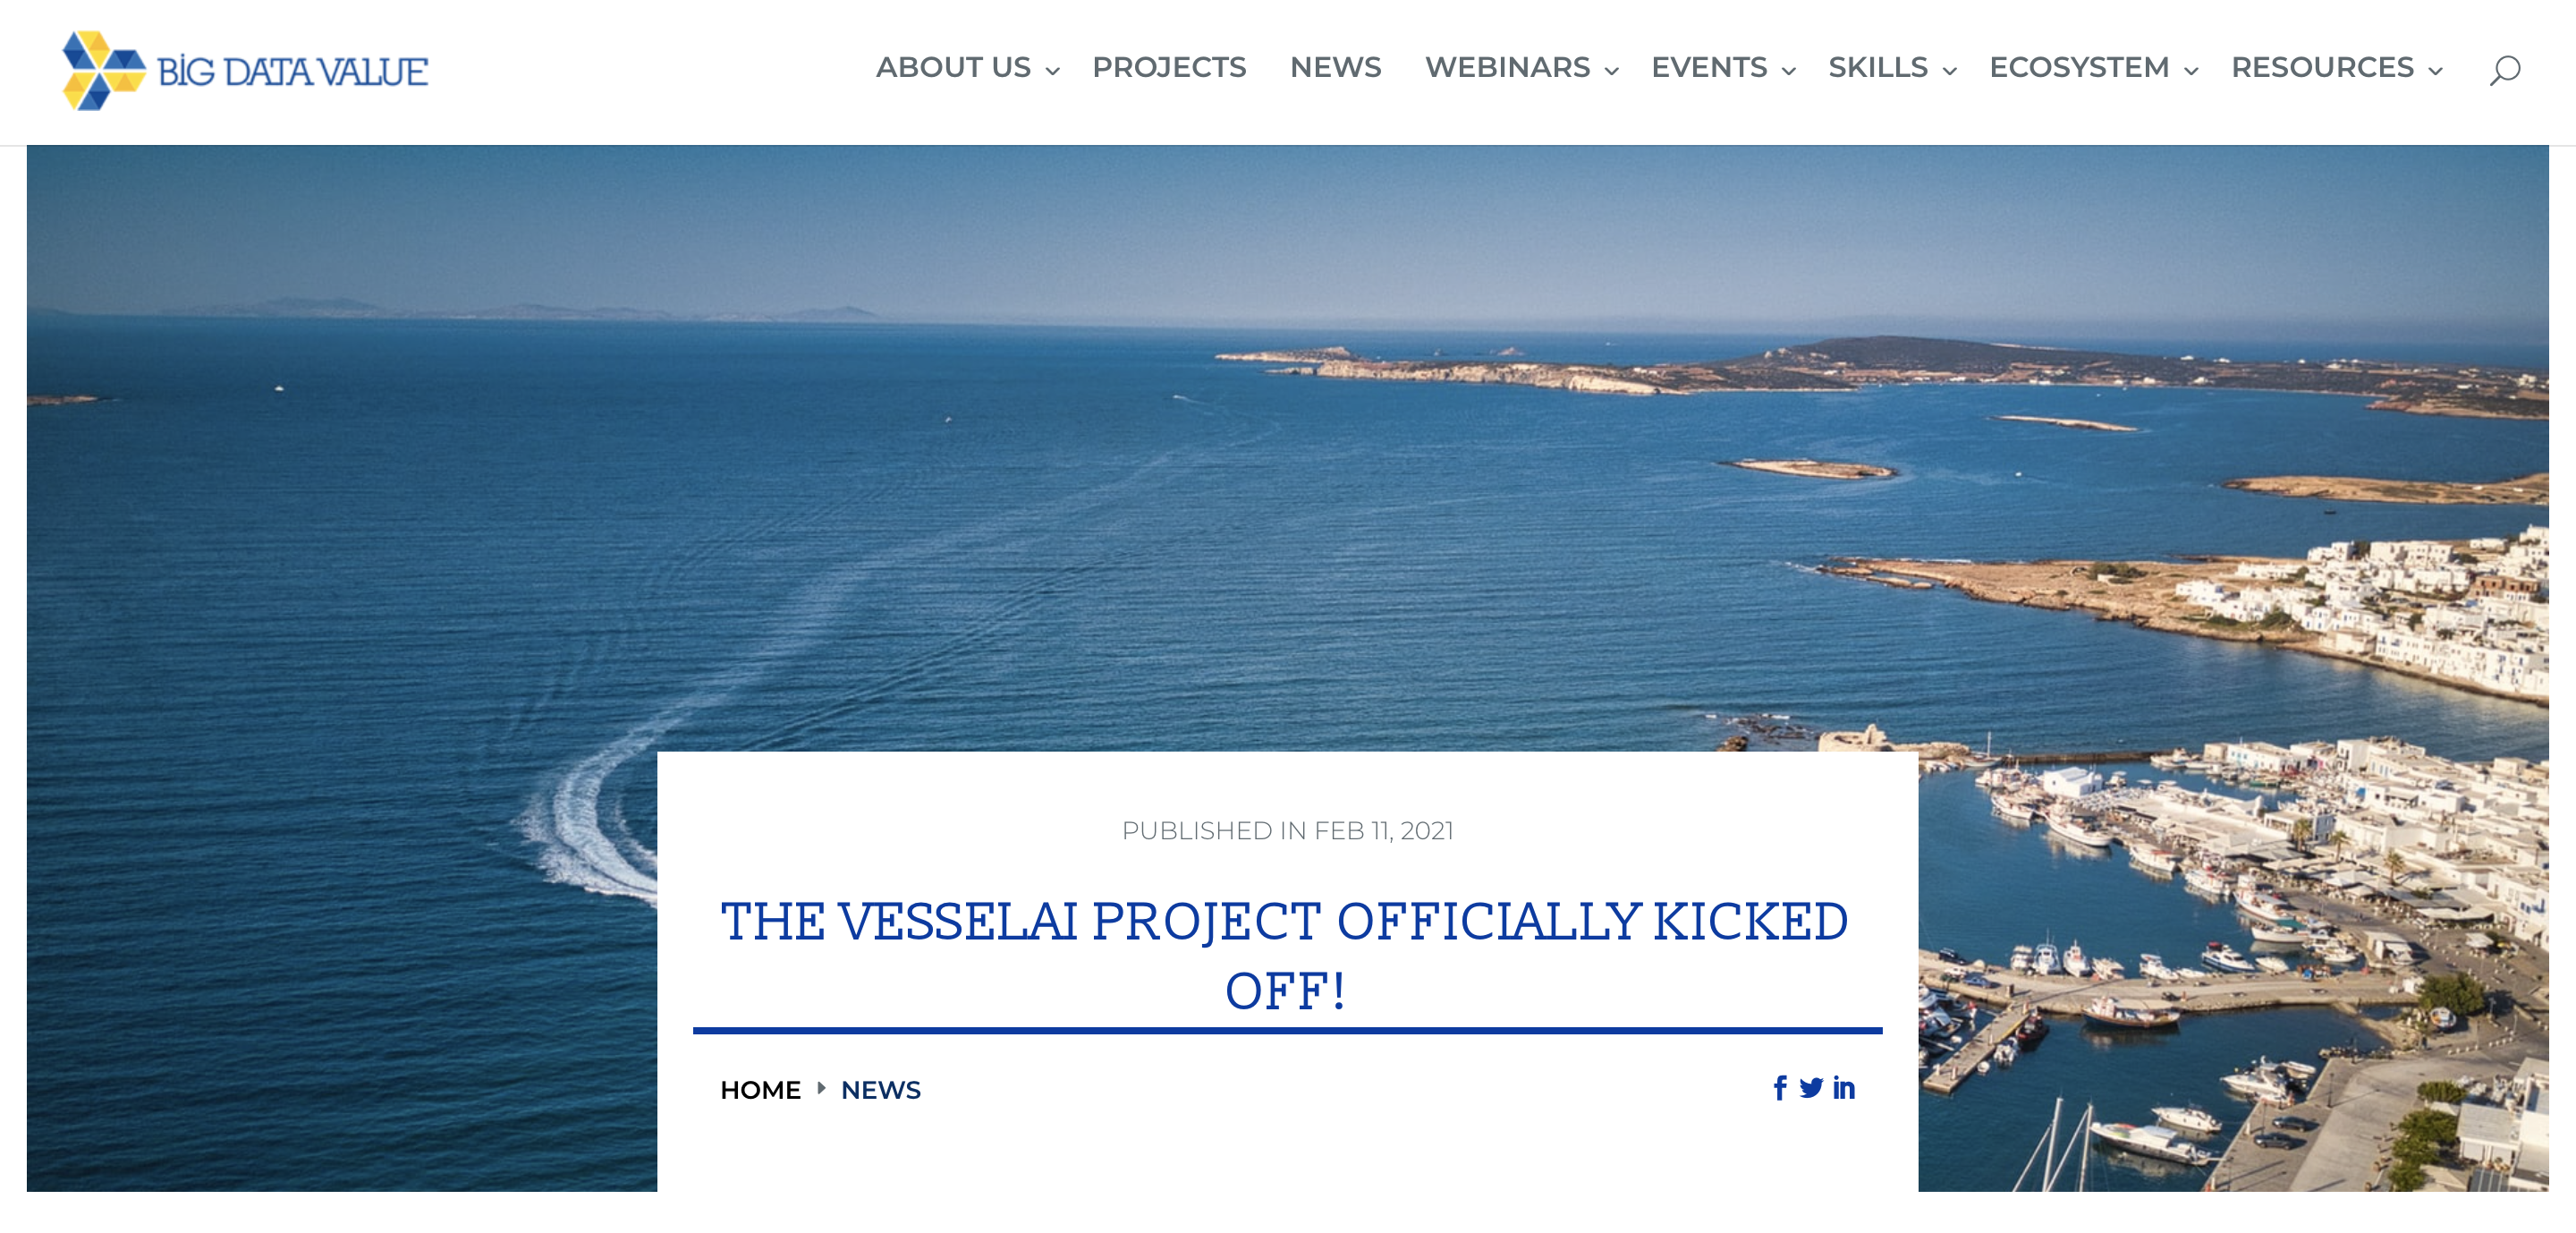 The VesselAI project officially kicked off!